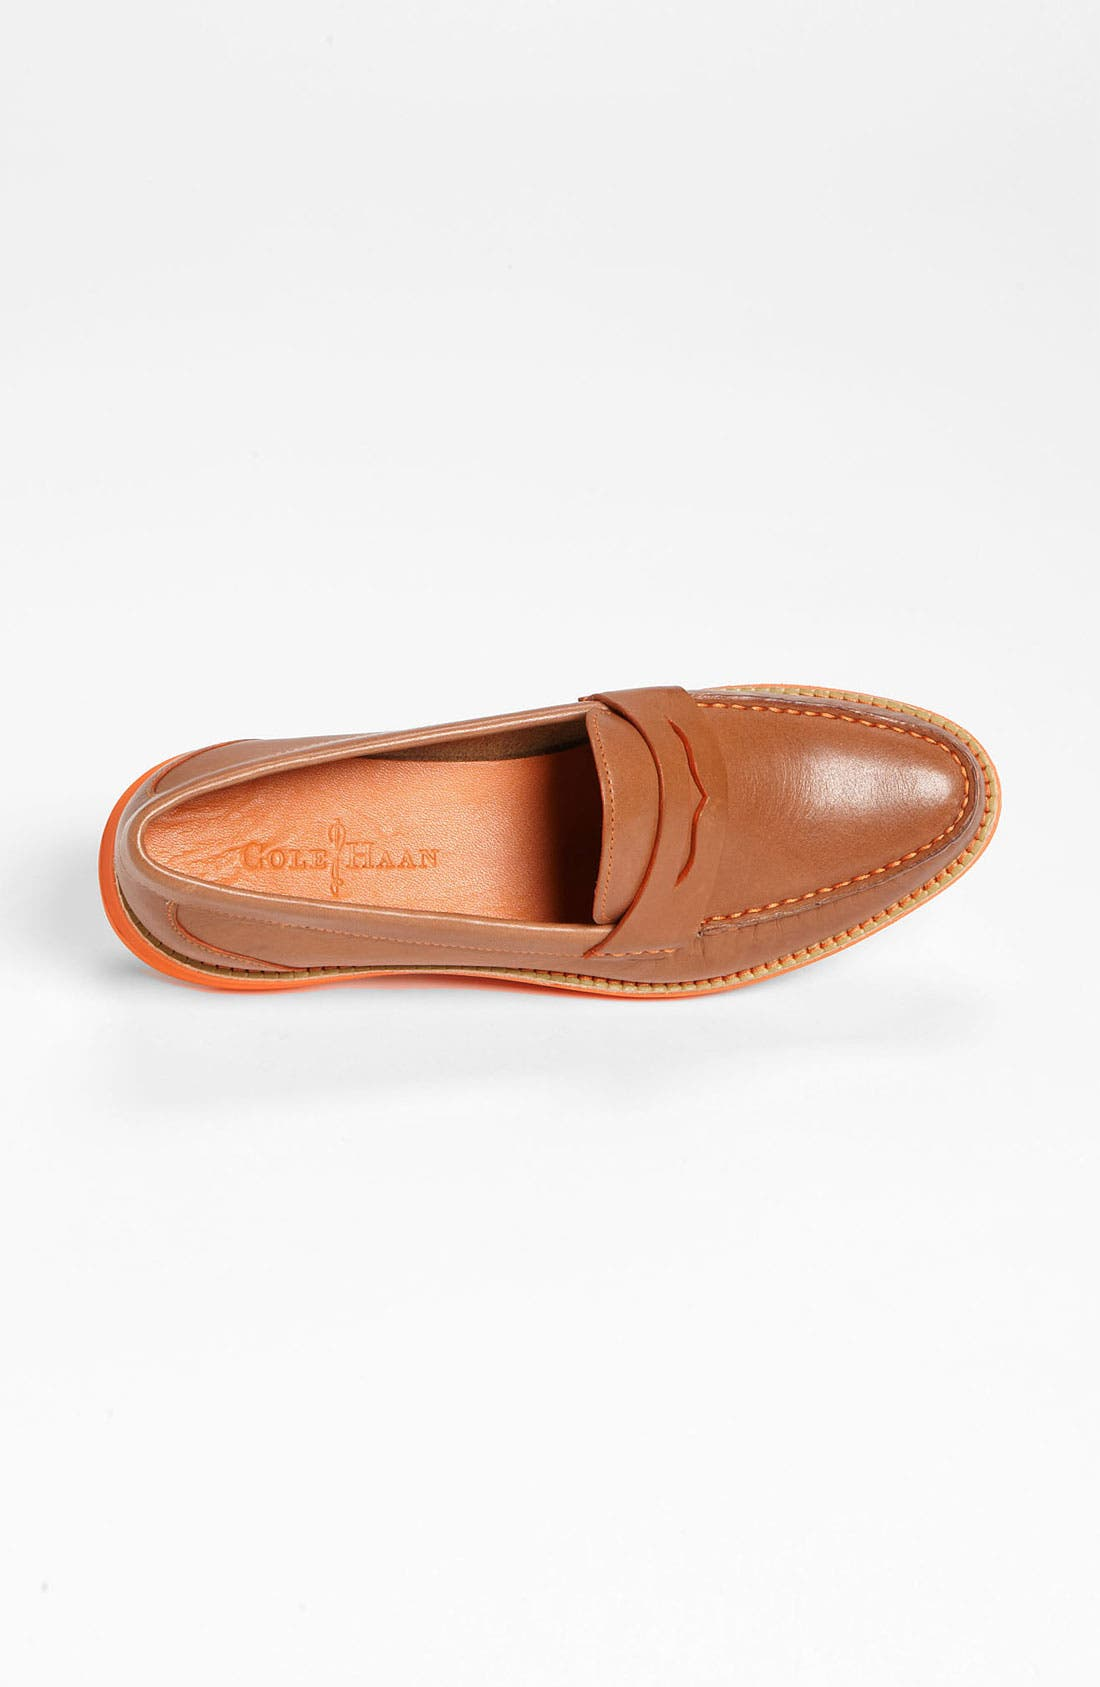 Alternate Image 3  - Cole Haan 'LunarGrand Monroe' Penny Loafer (Women)